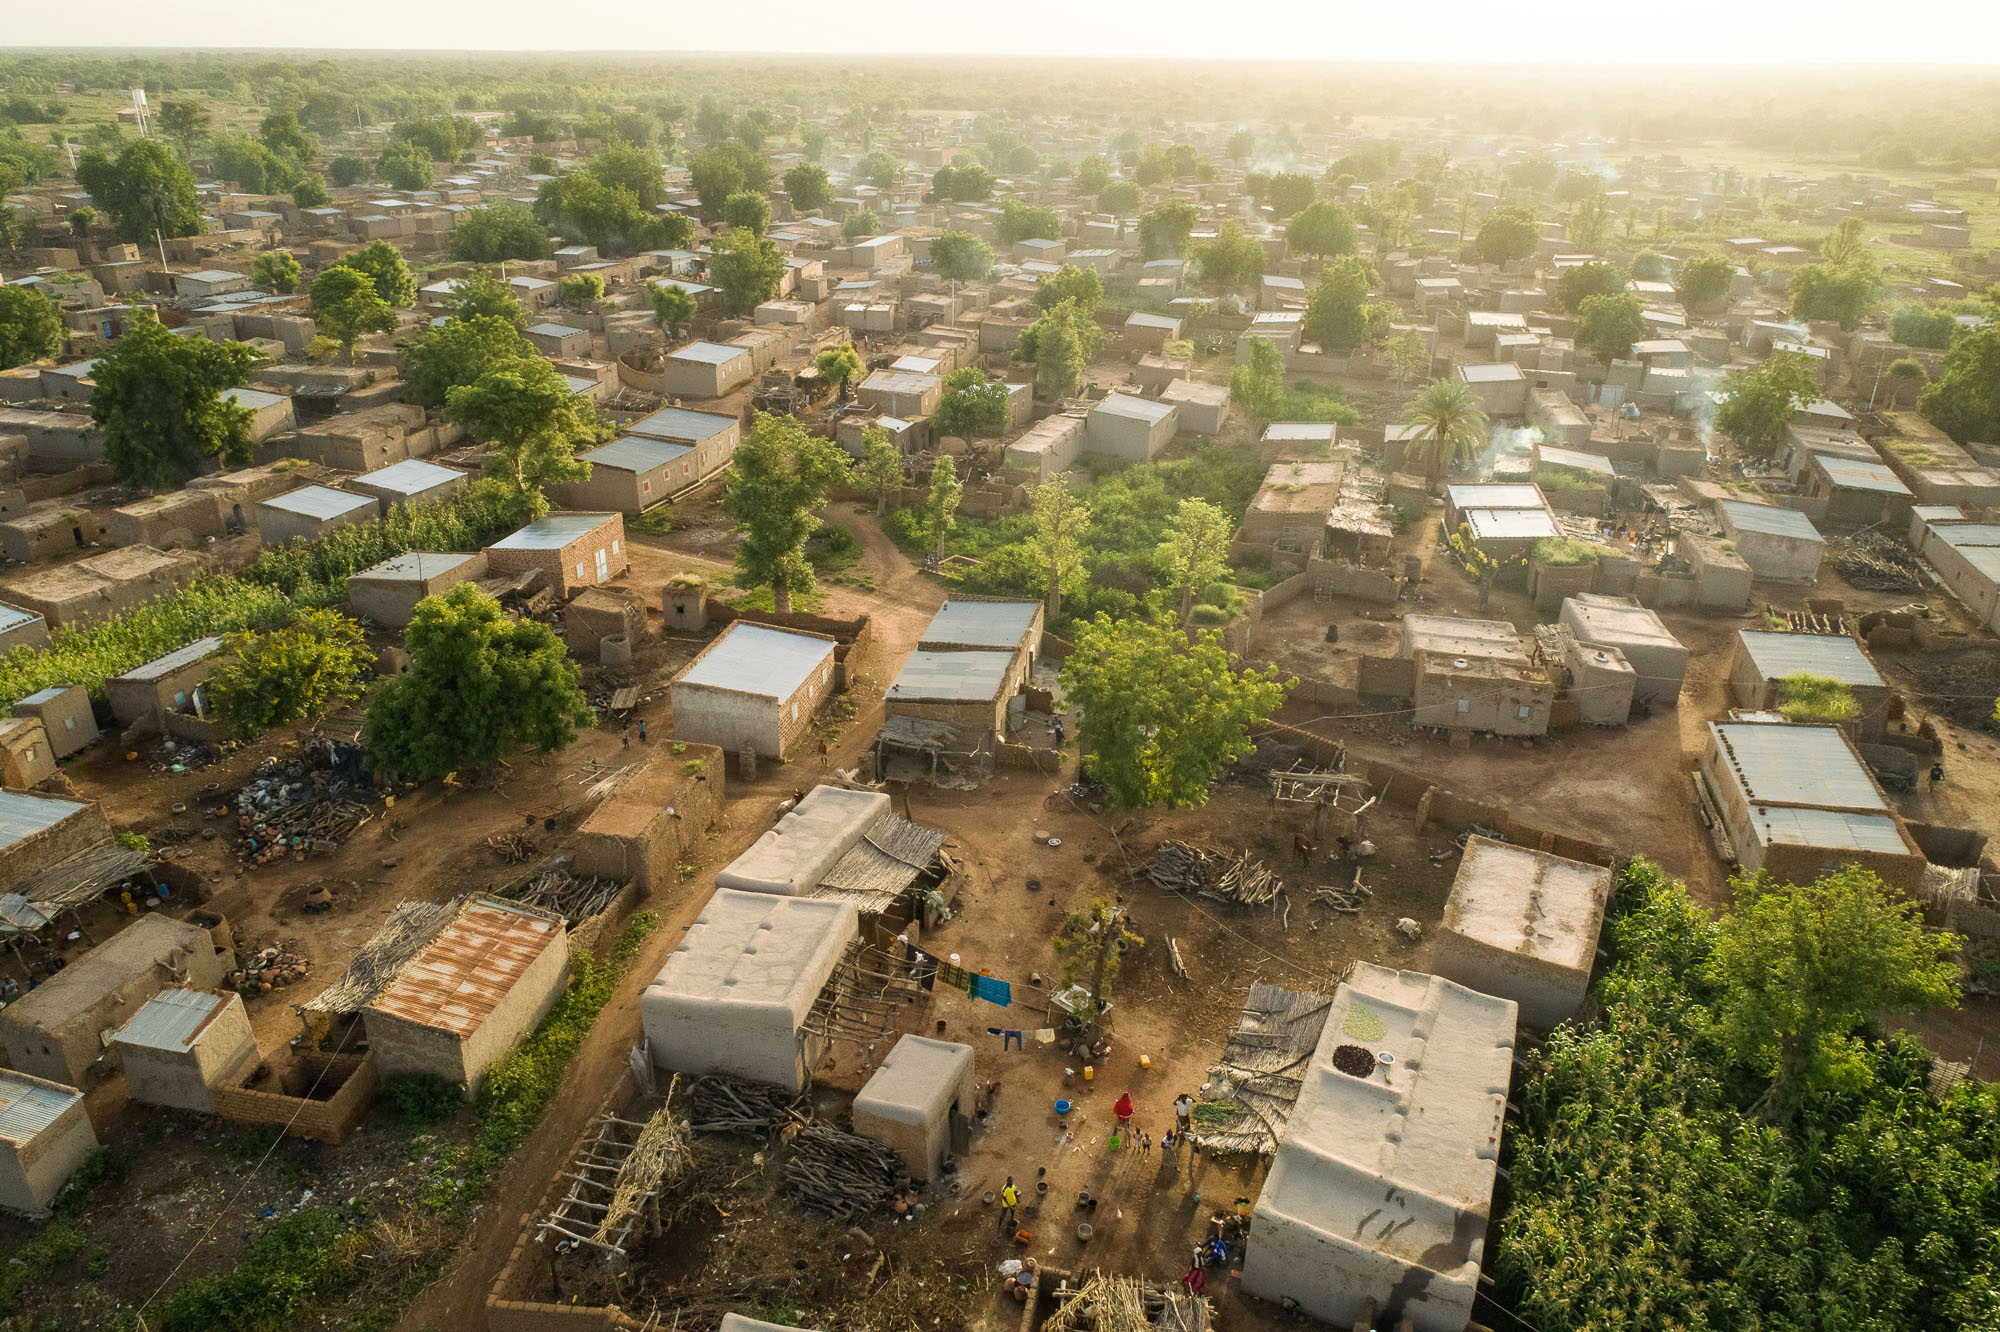 Aerial view of a village in Mouhoun Province, Burkina Faso.